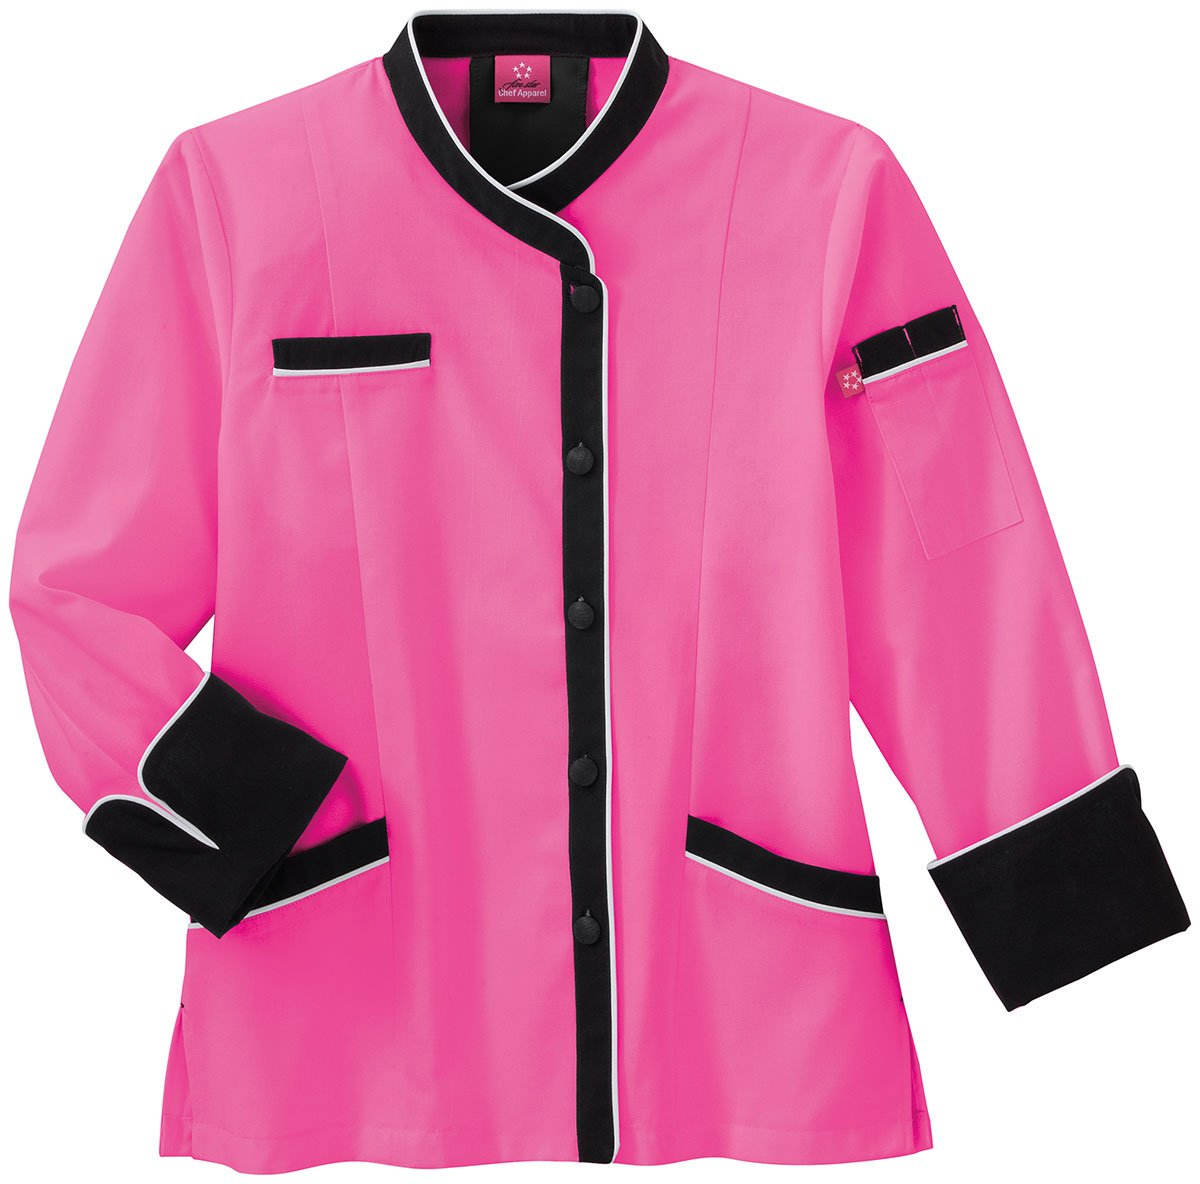 White Swan Five Star Chef Apparel Ladies Long Sleeve Executive Coat (Assorted Colors) Encompass